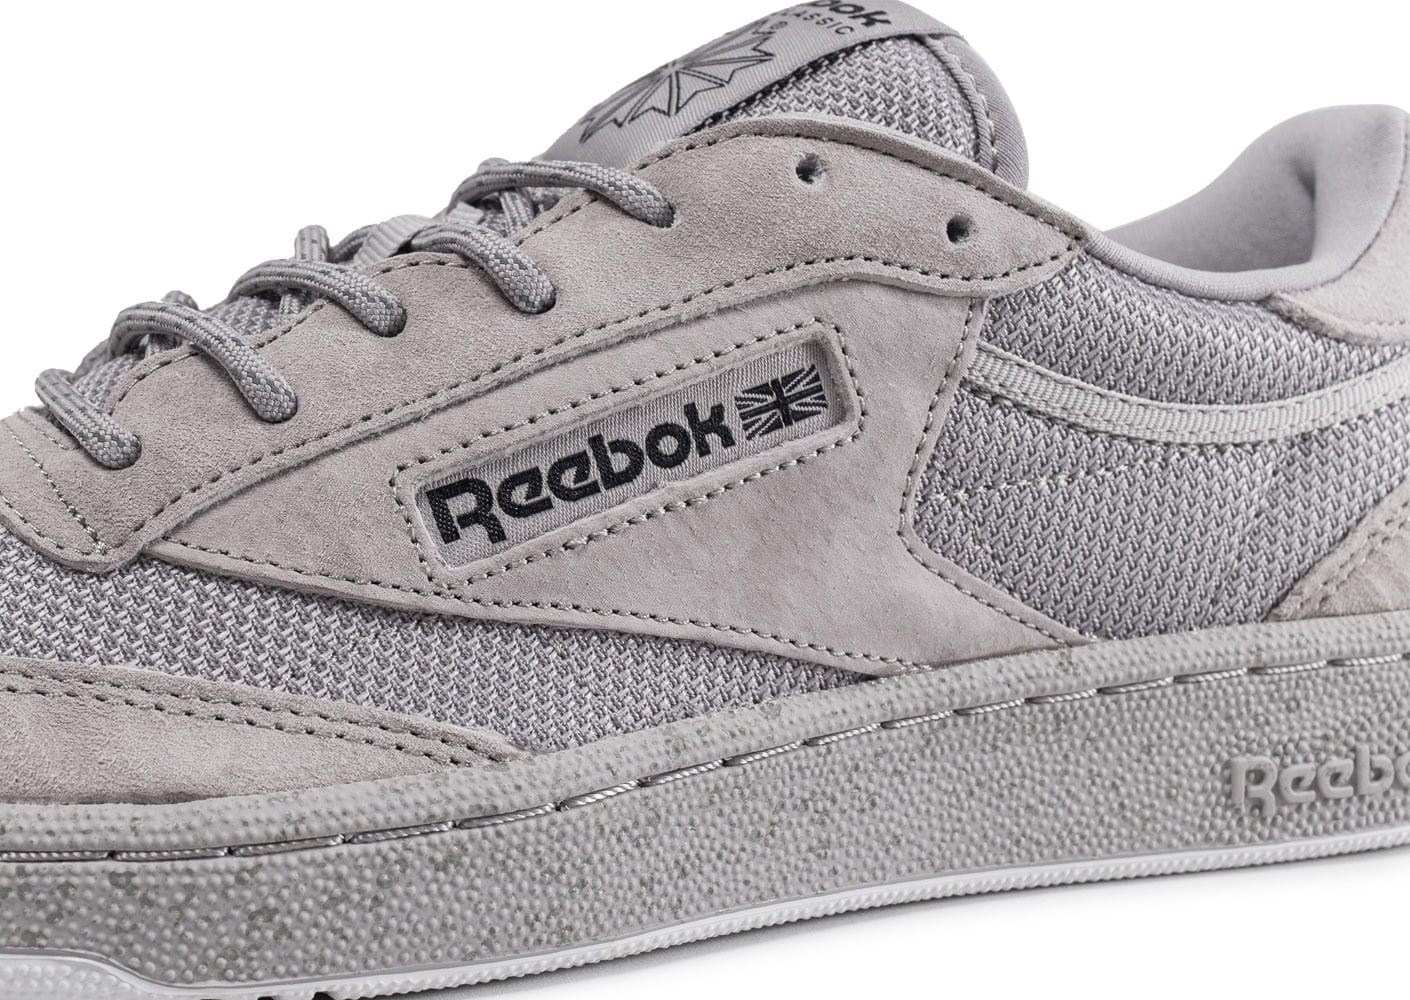 52eafe971db9 Reebok Club C 85 ST grise - Chaussures Baskets homme - Chausport